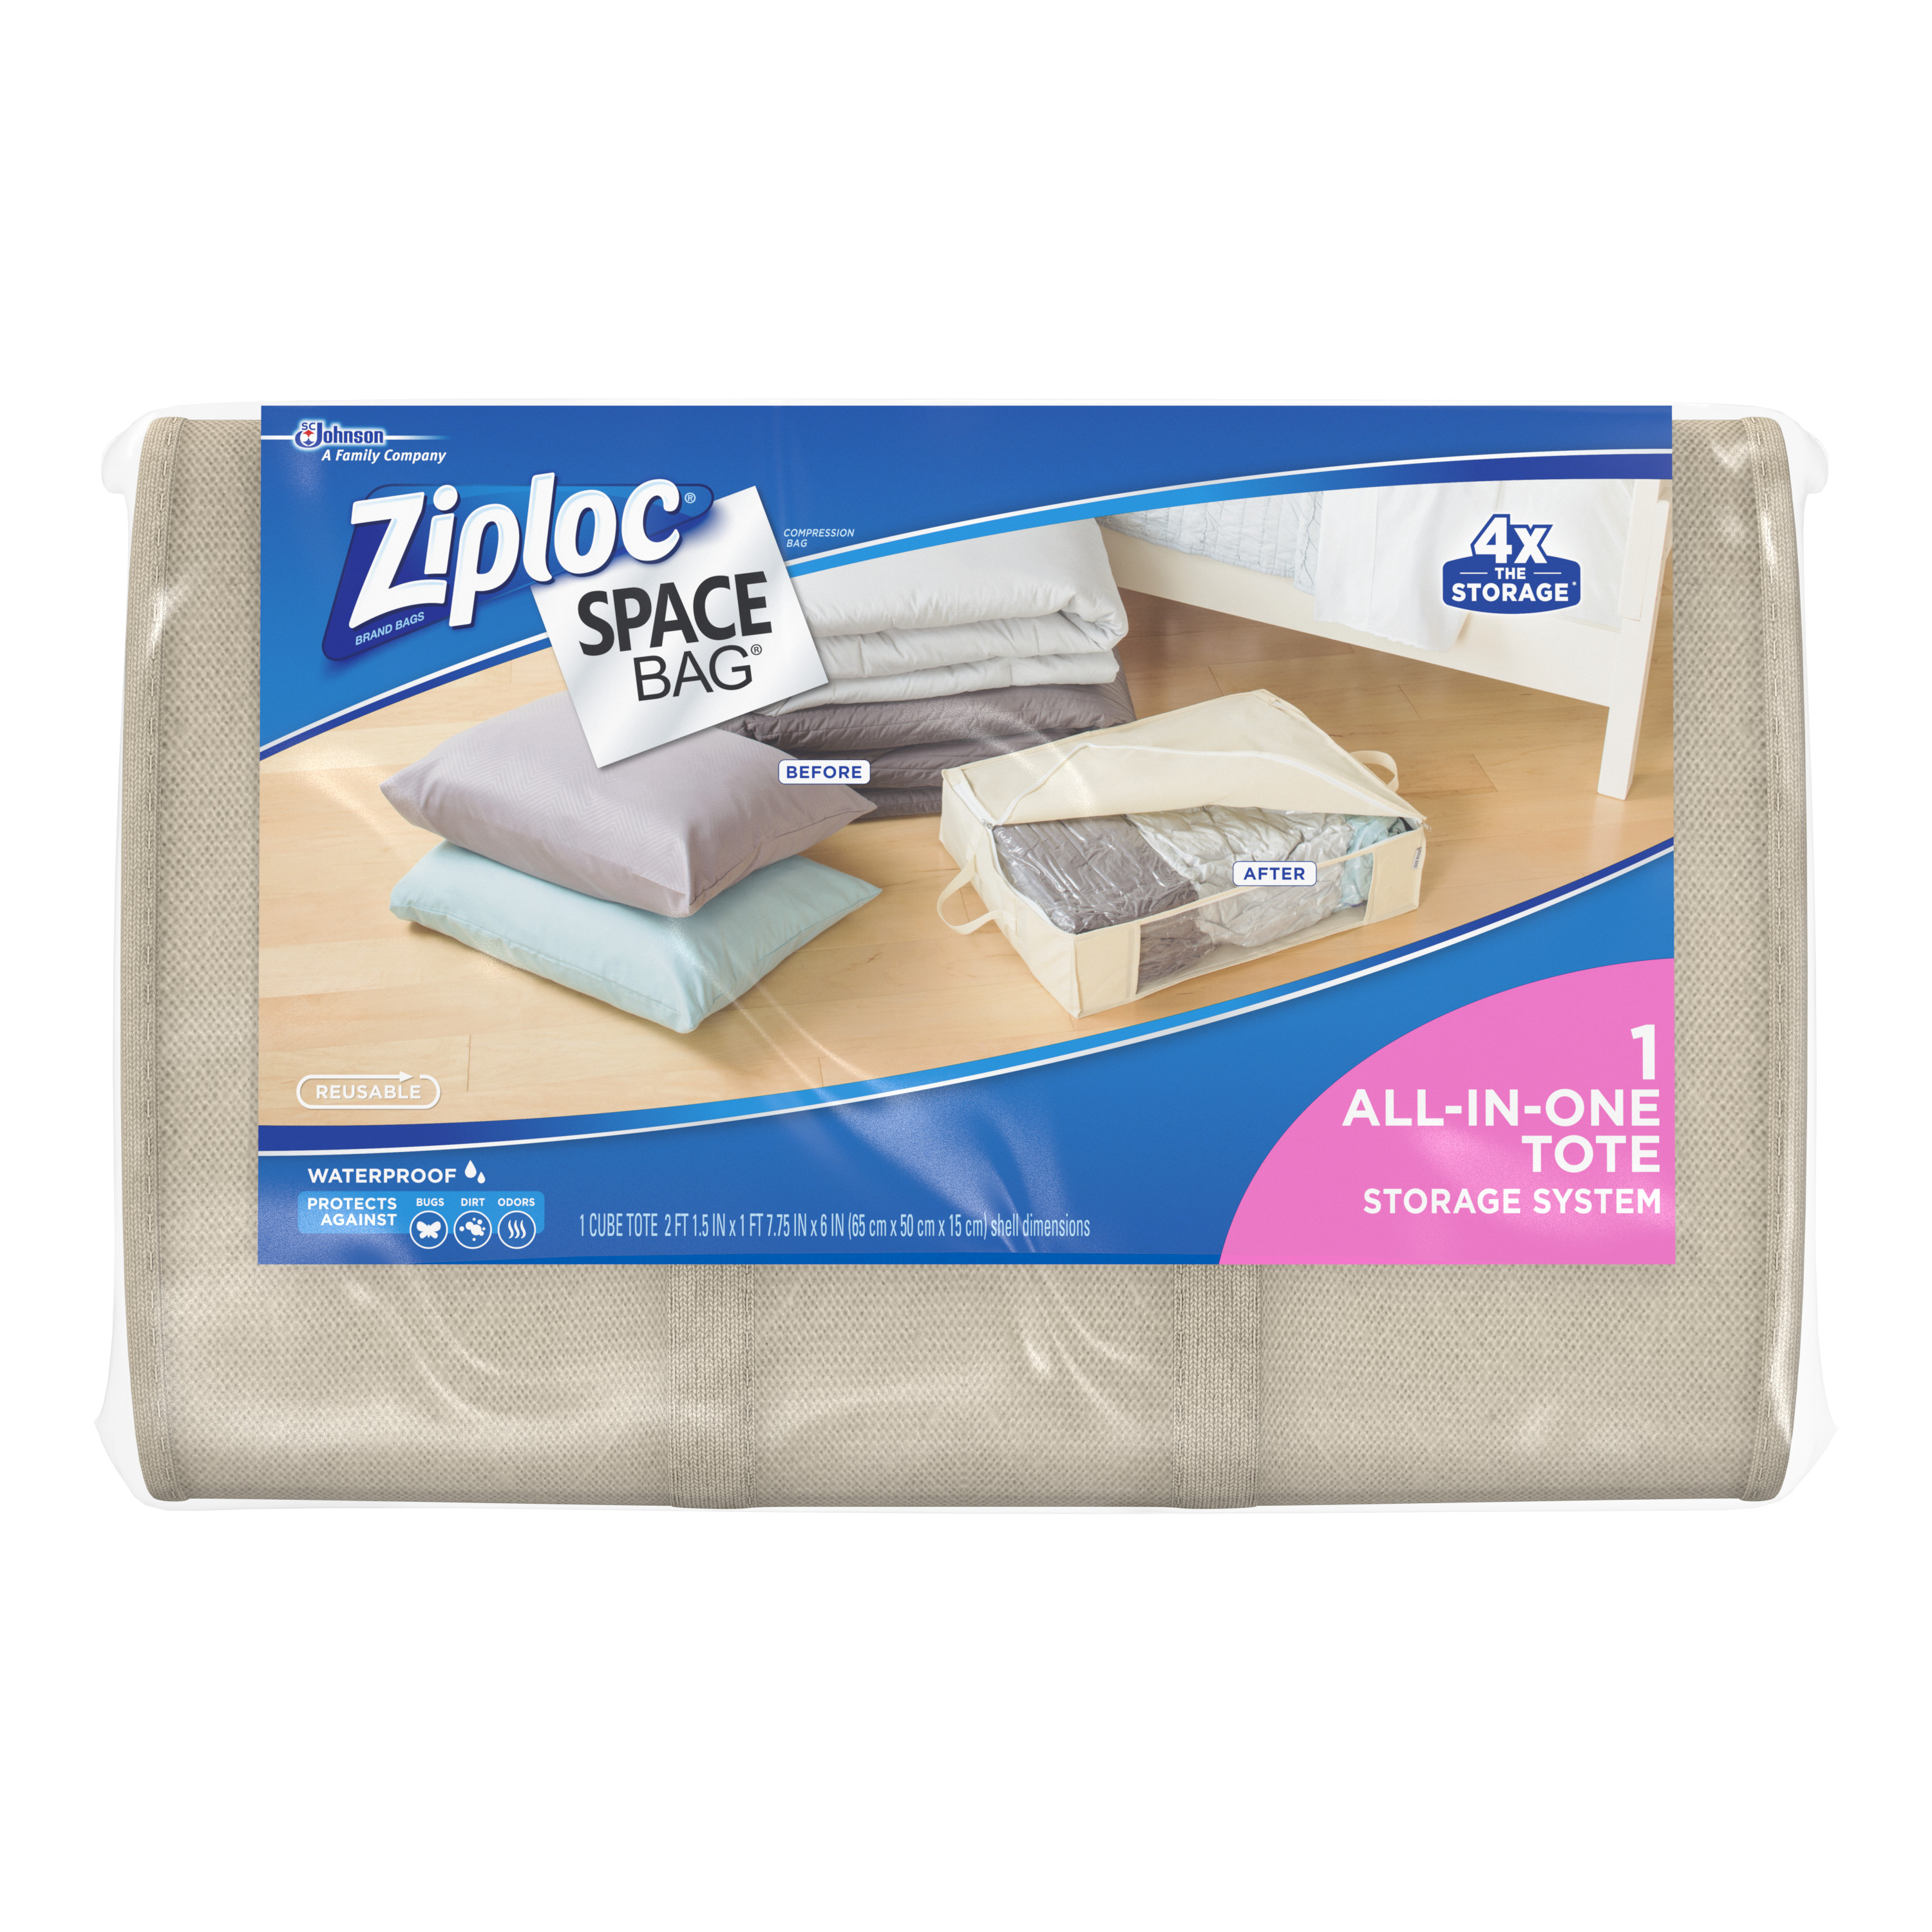 Ziploc Space Bag 1 count Underbed Tote